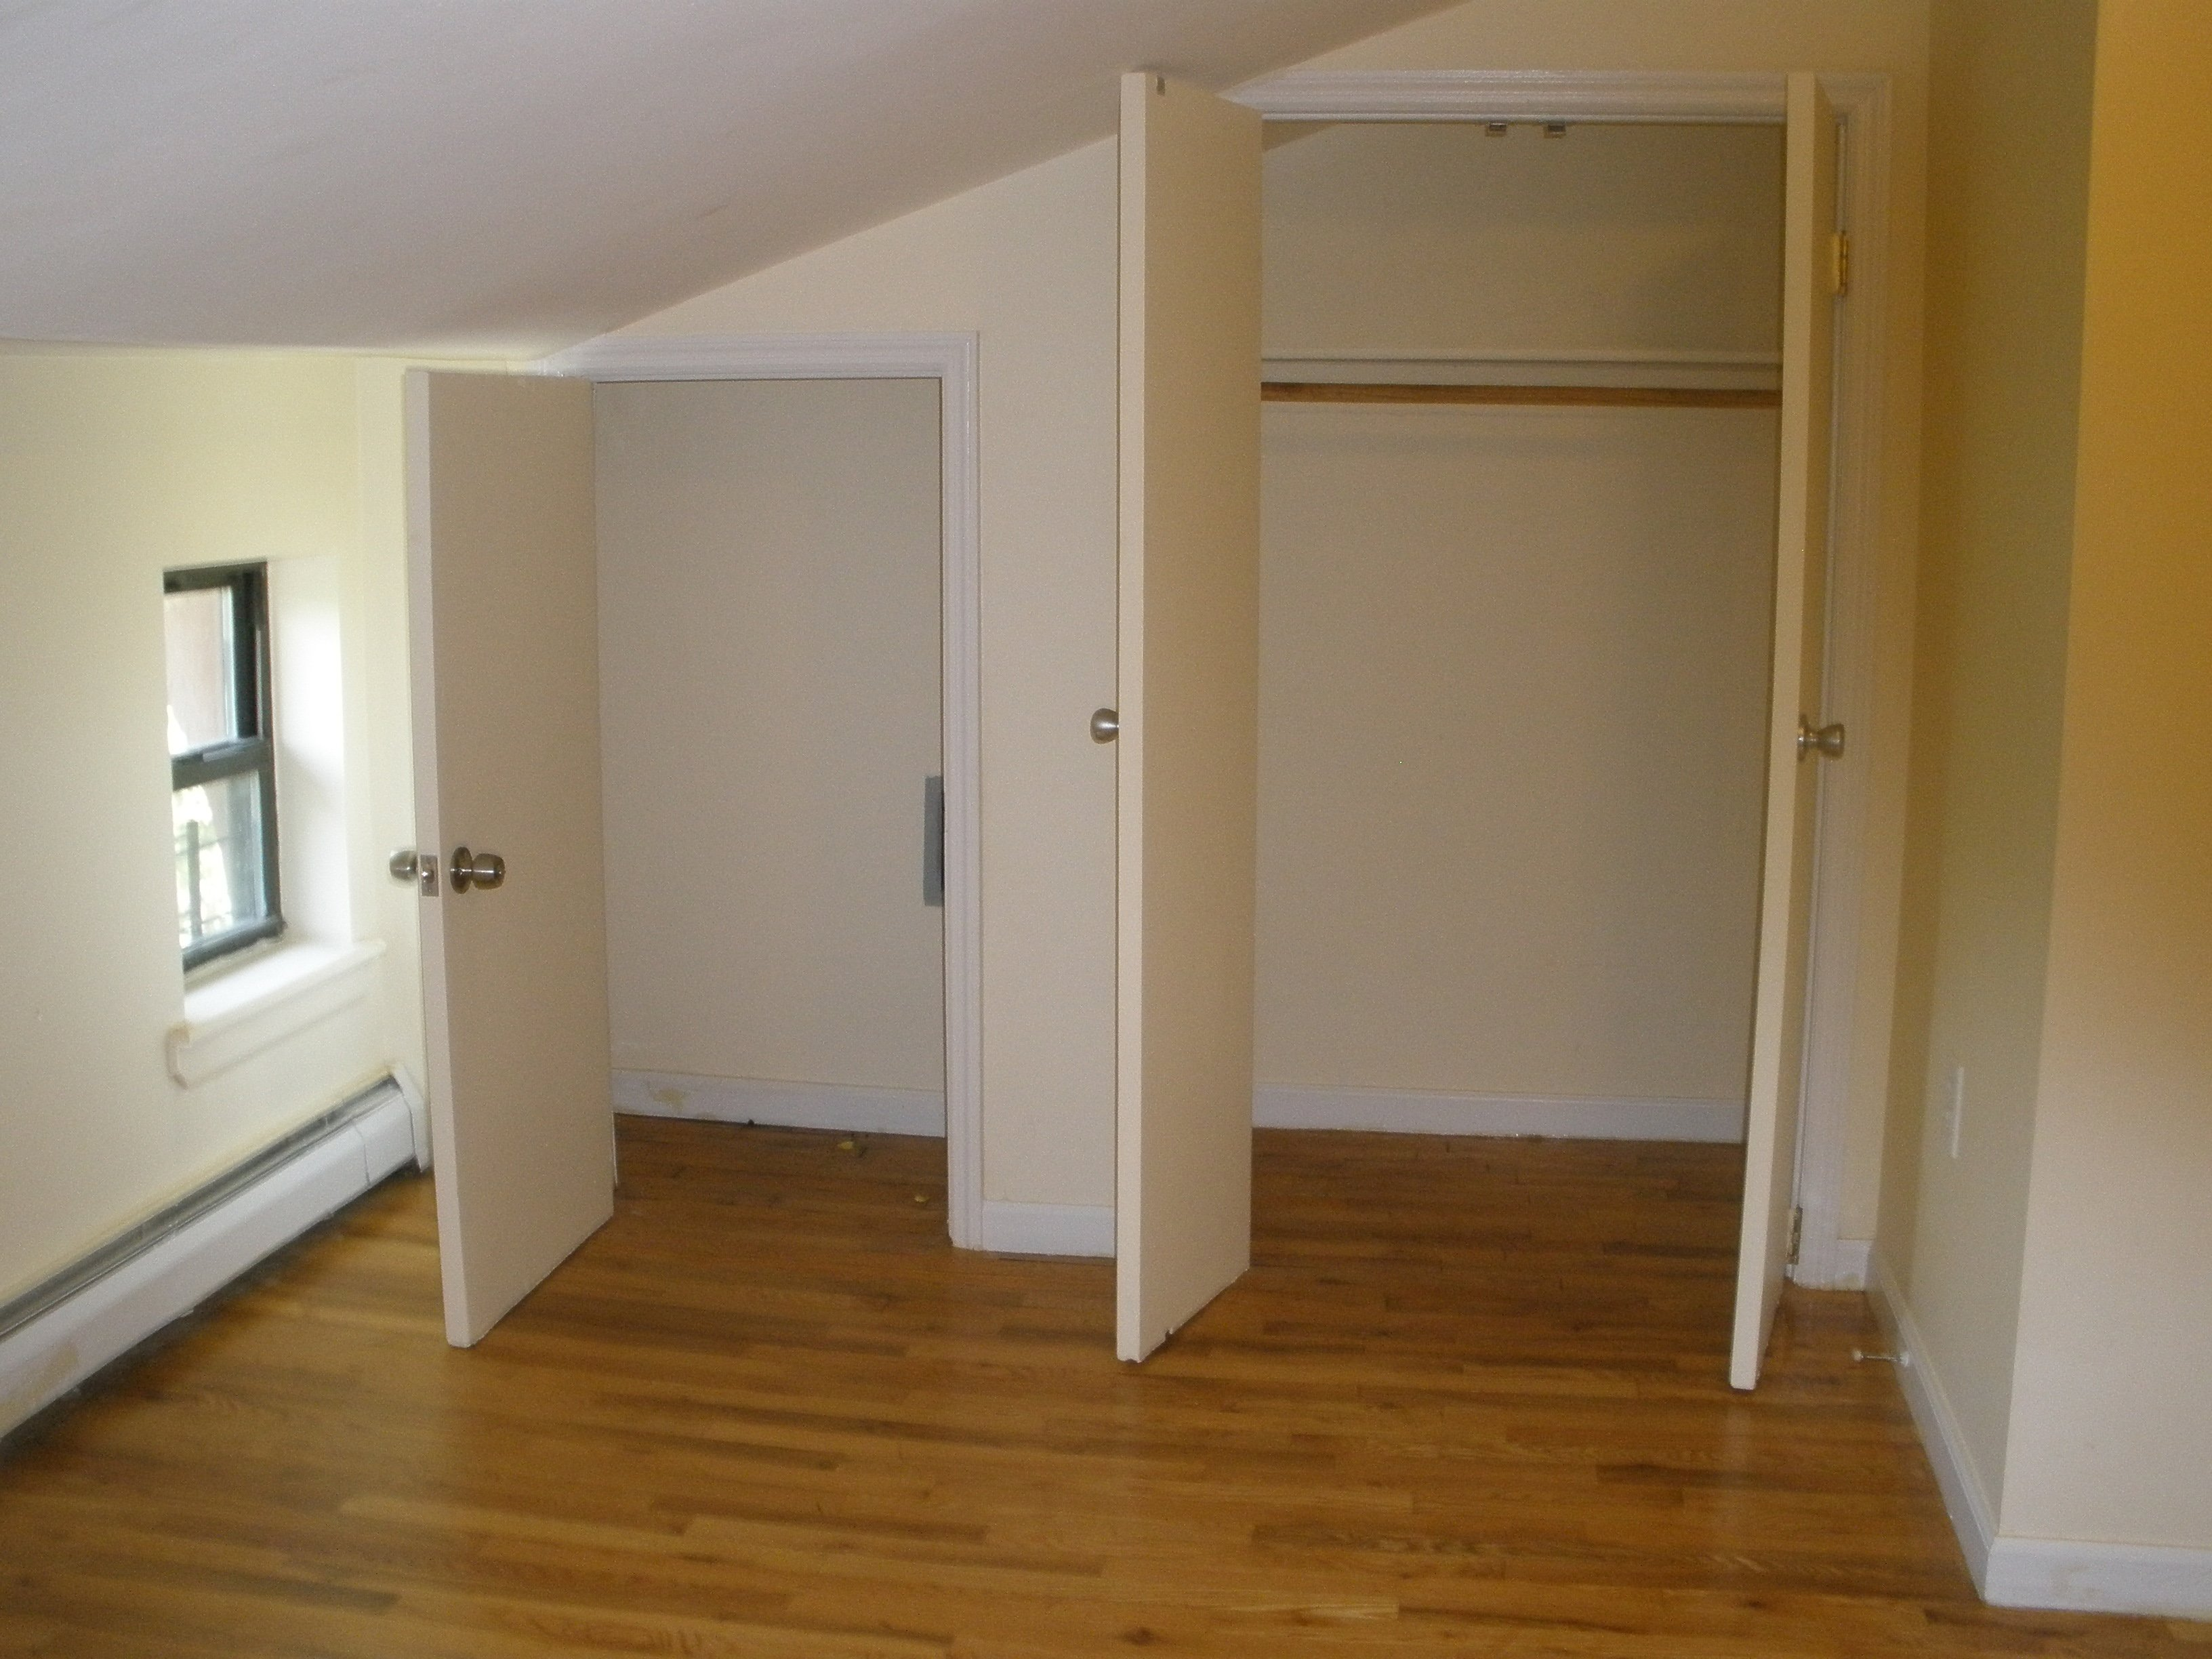 Bed Stuy 1 Bedroom Apartment for Rent Brooklyn CRG3115